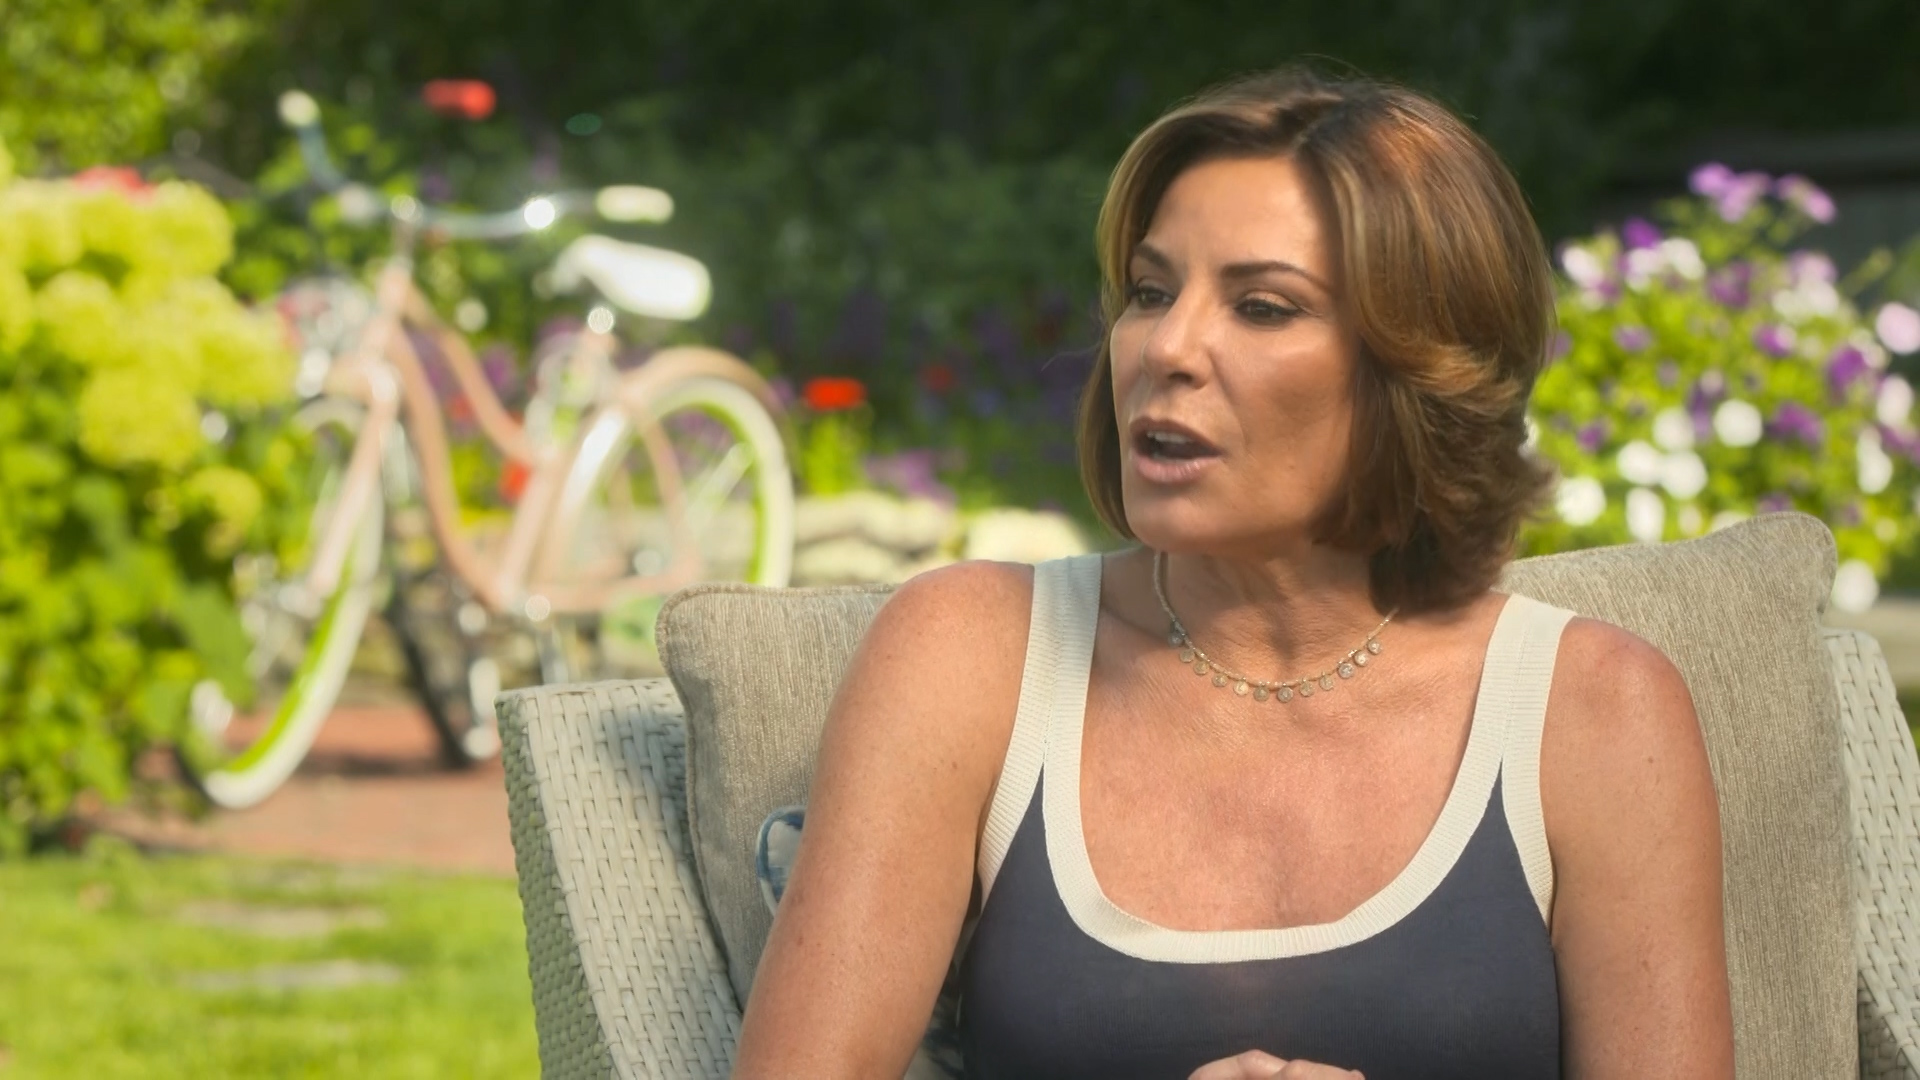 Does Luann Blame Tom for the Divorce?